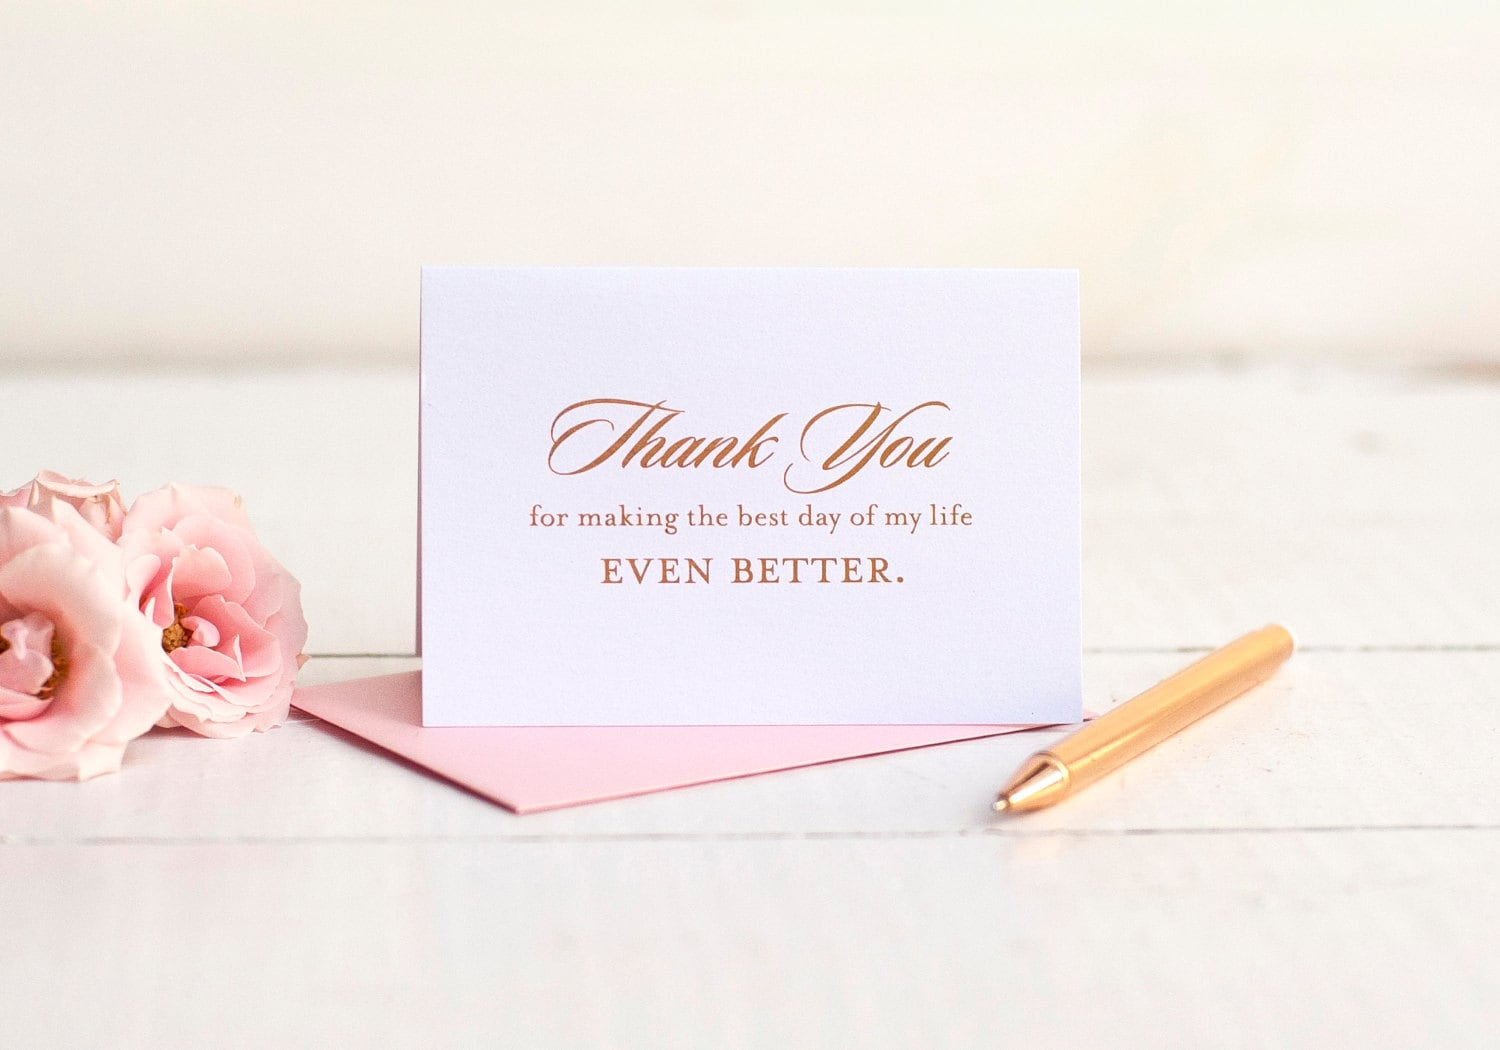 Thank You Card Wedding Gift: Wedding Thank You Card With Rose Gold Foil Wedding Note Cards